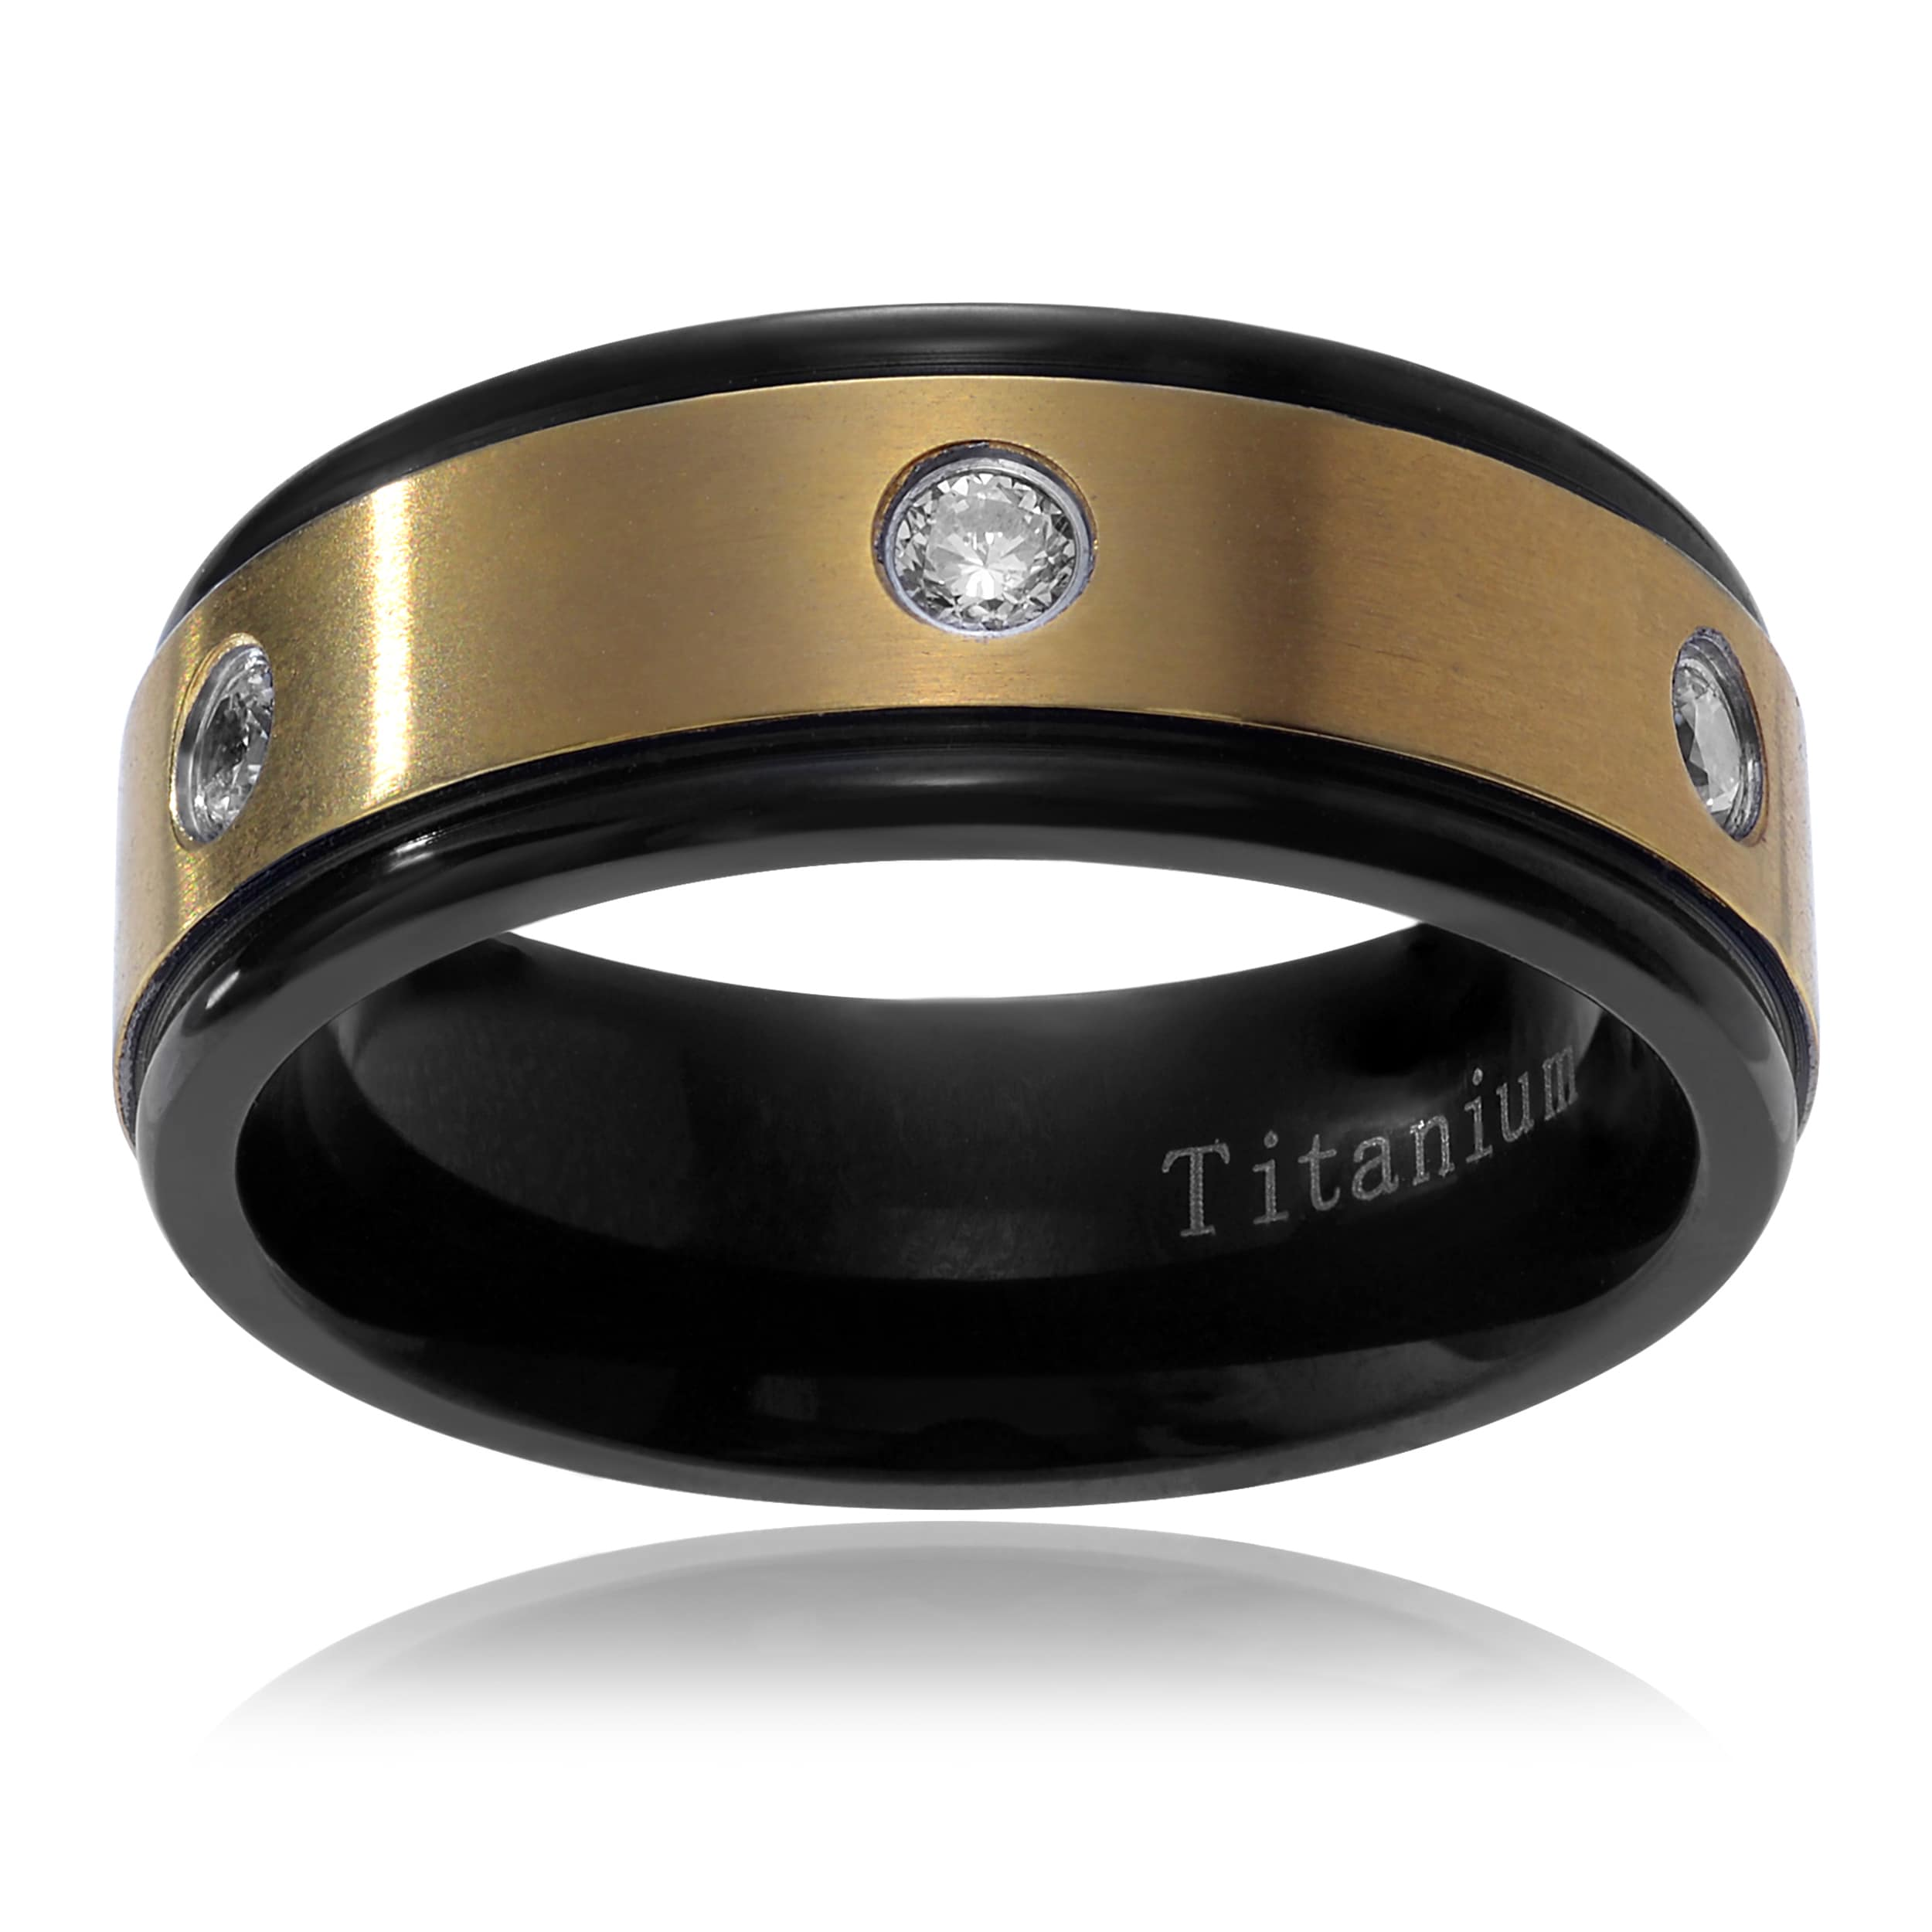 Territory Men's Ion-plated Titanium Cubic Zirconia Inlay Wedding Band (8mm) Size- 12